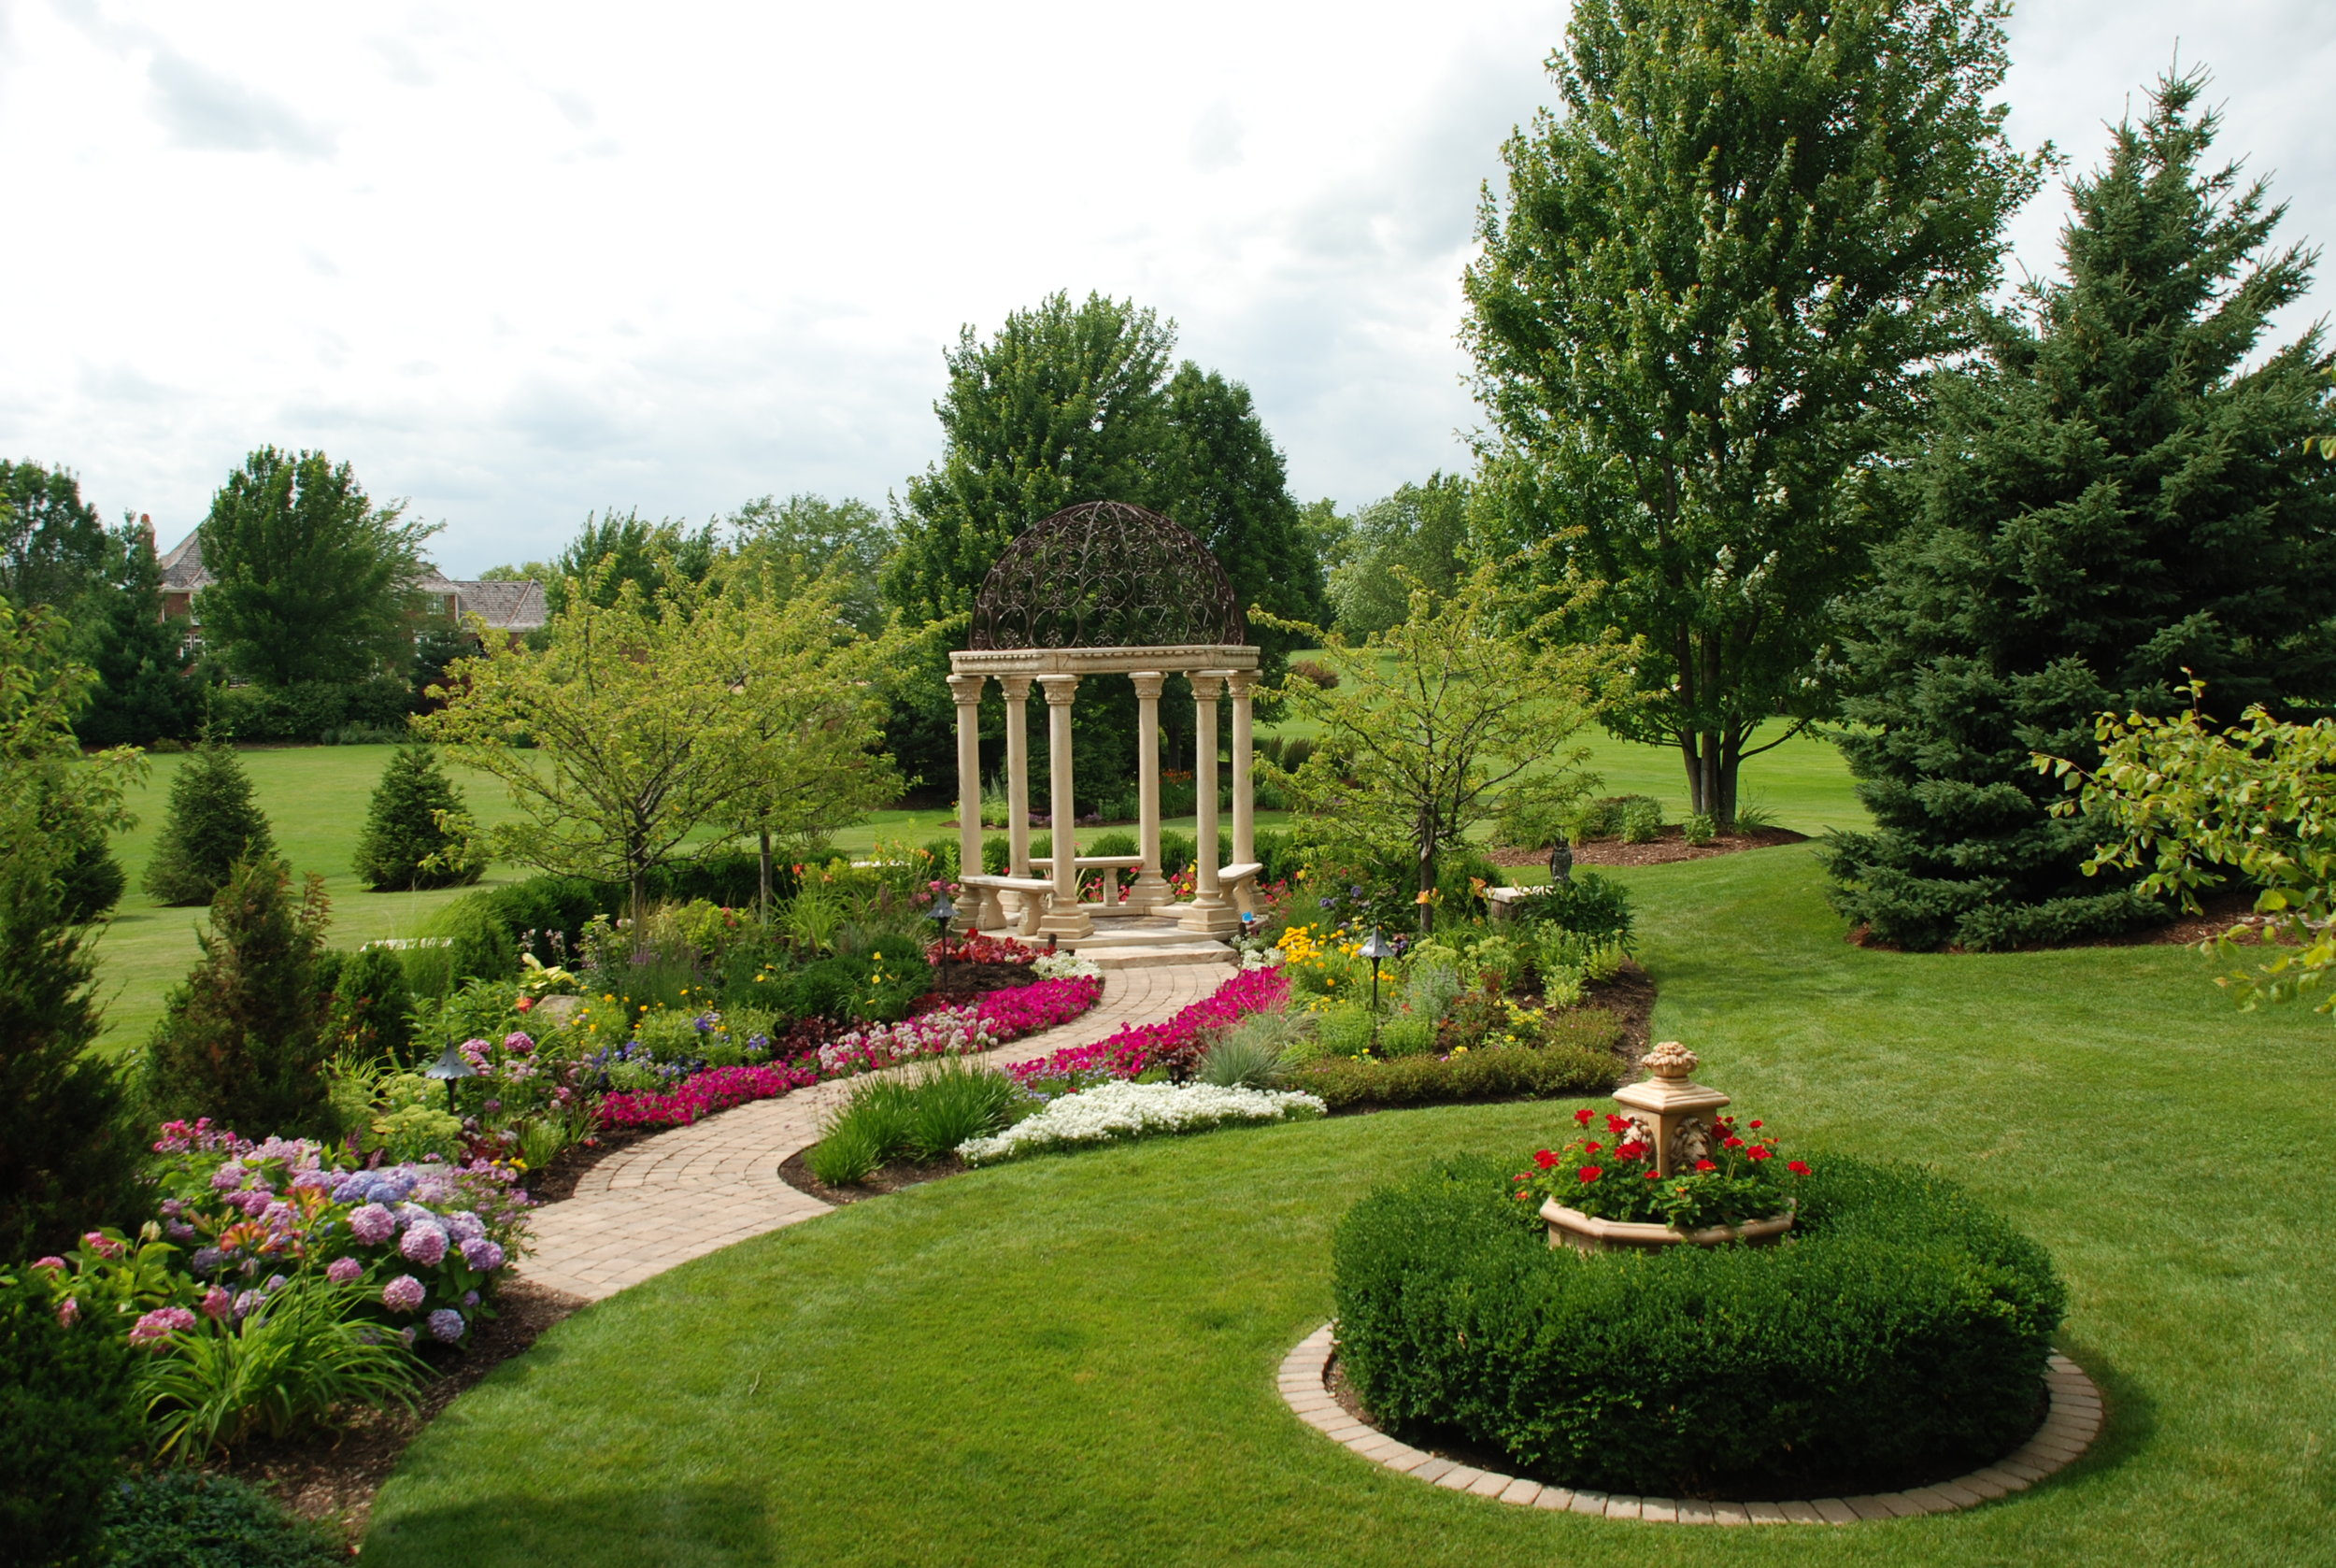 Landscape design after renovation in St Charles, IL